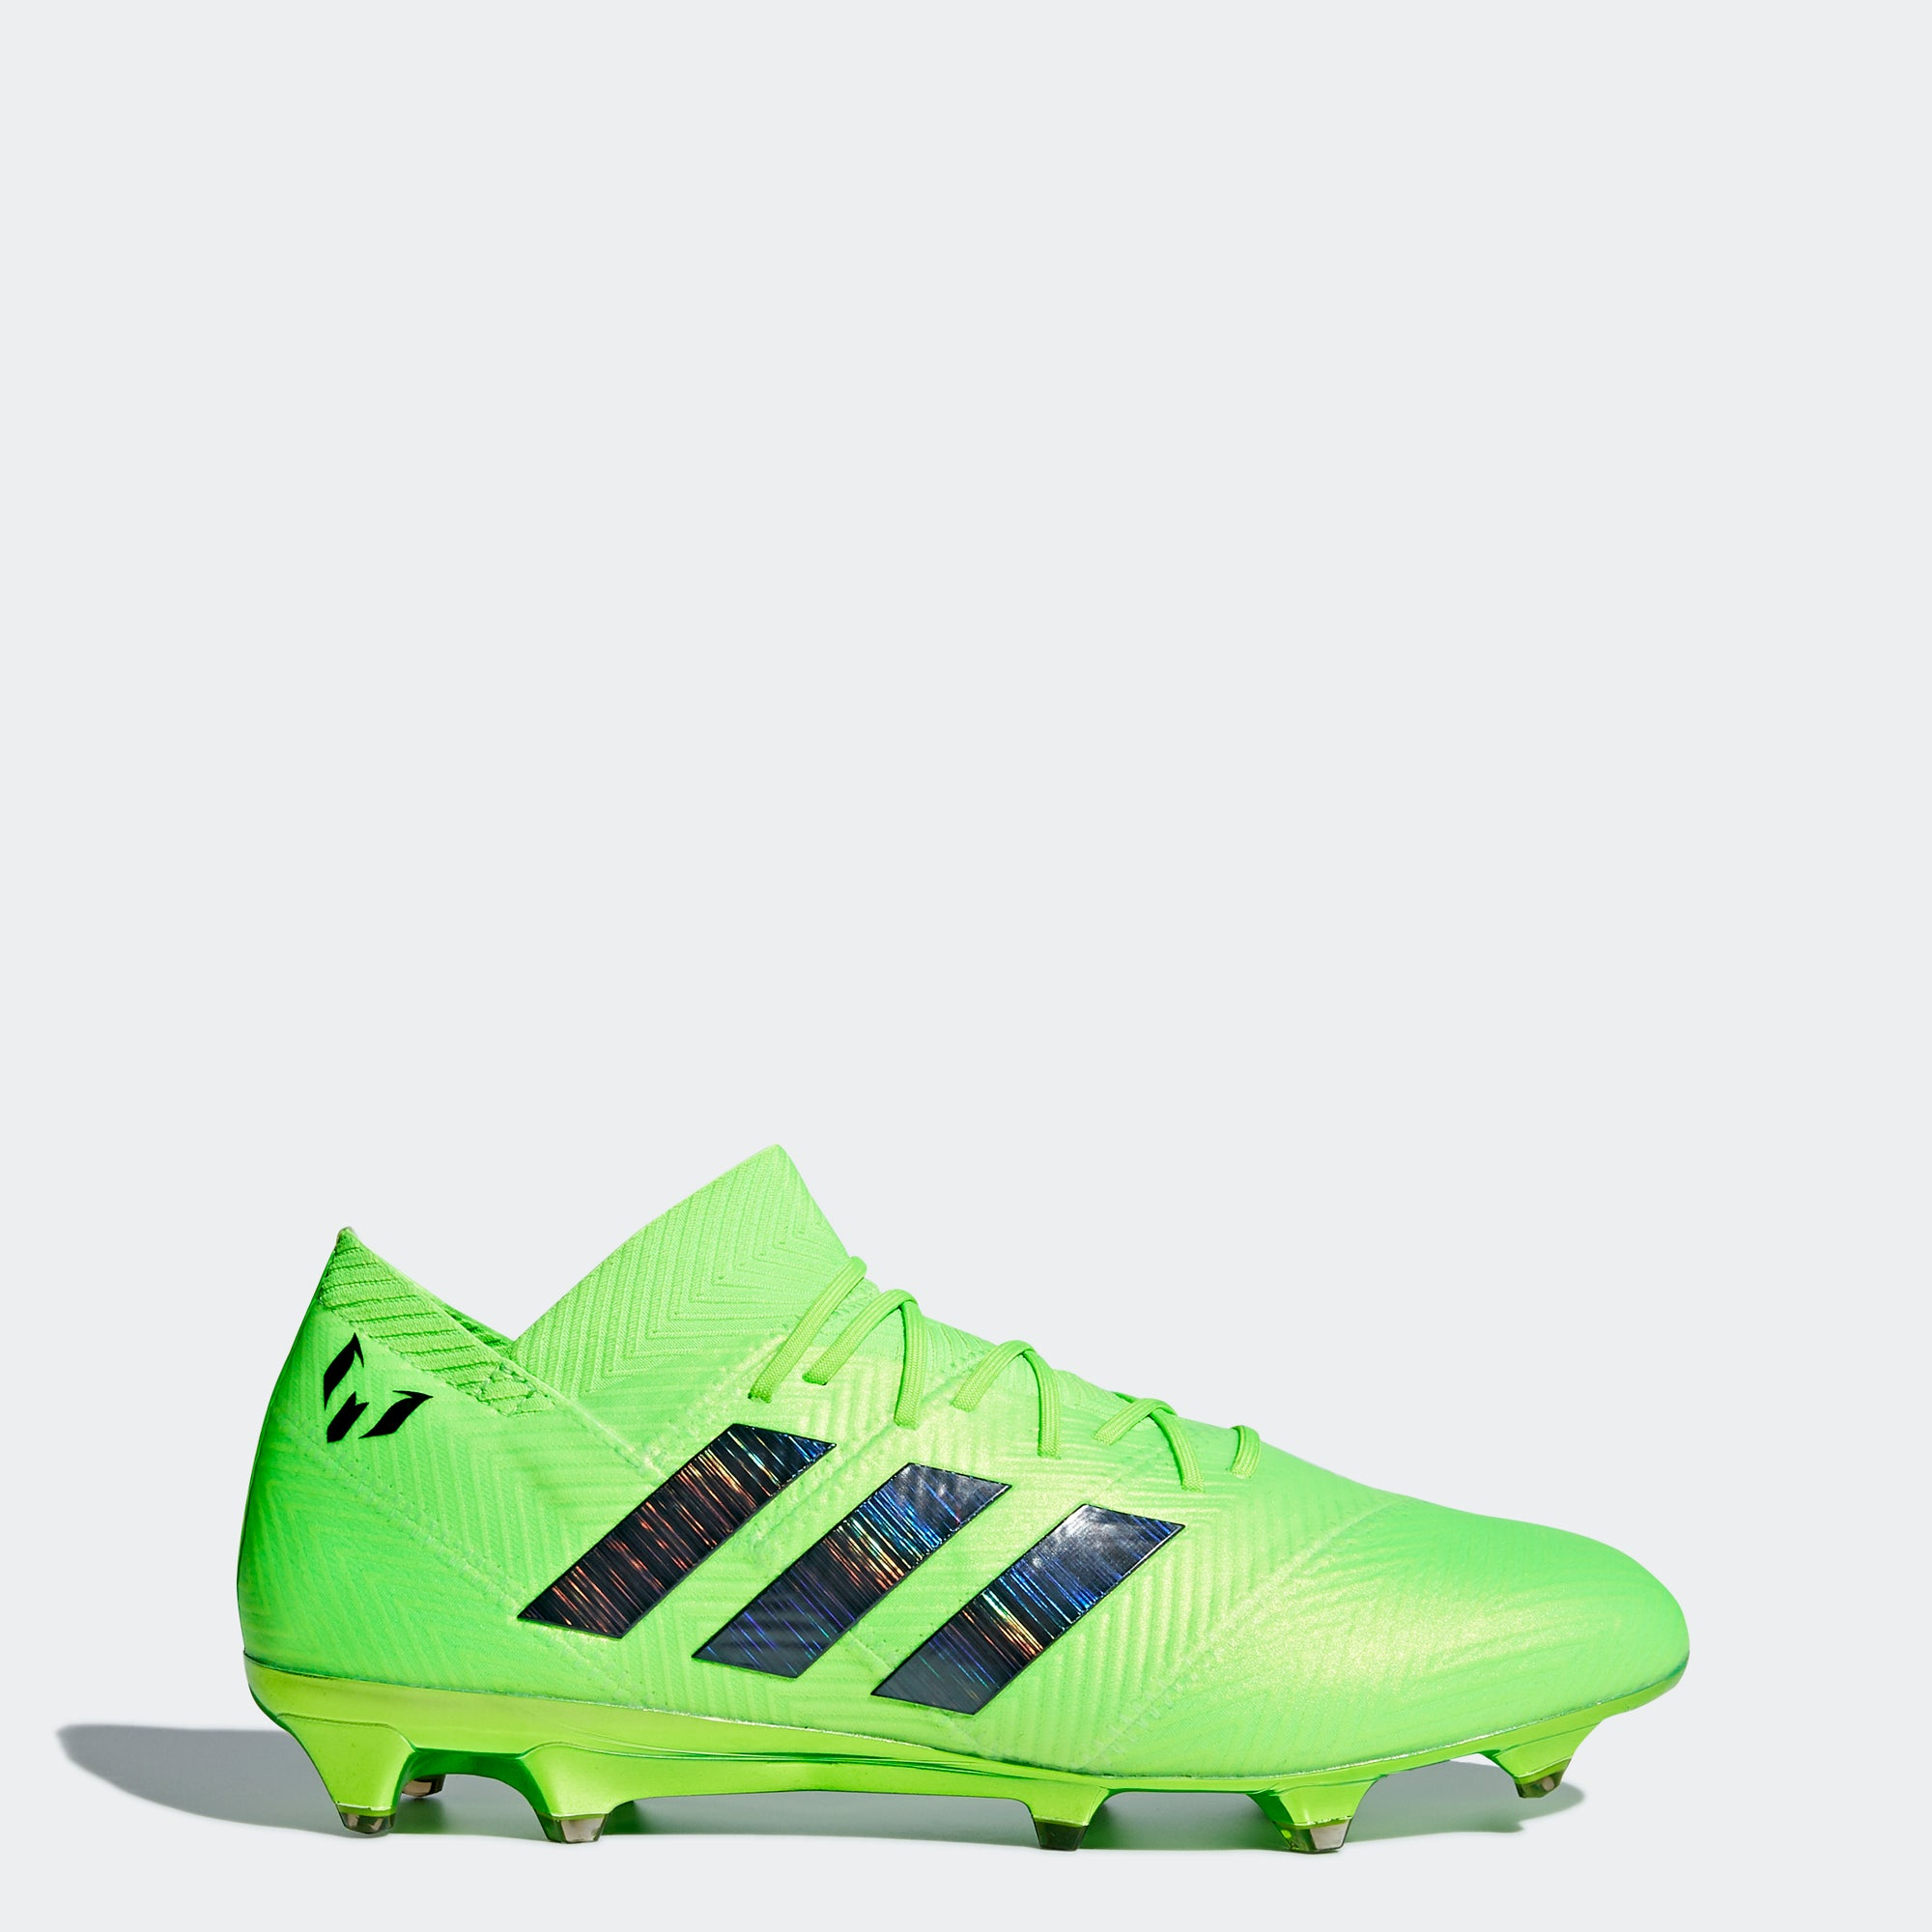 da5e0fd81f4a Adidas - Men s Adidas Nemeziz Messi 18.1 Firm Ground Boots - La Liga Soccer